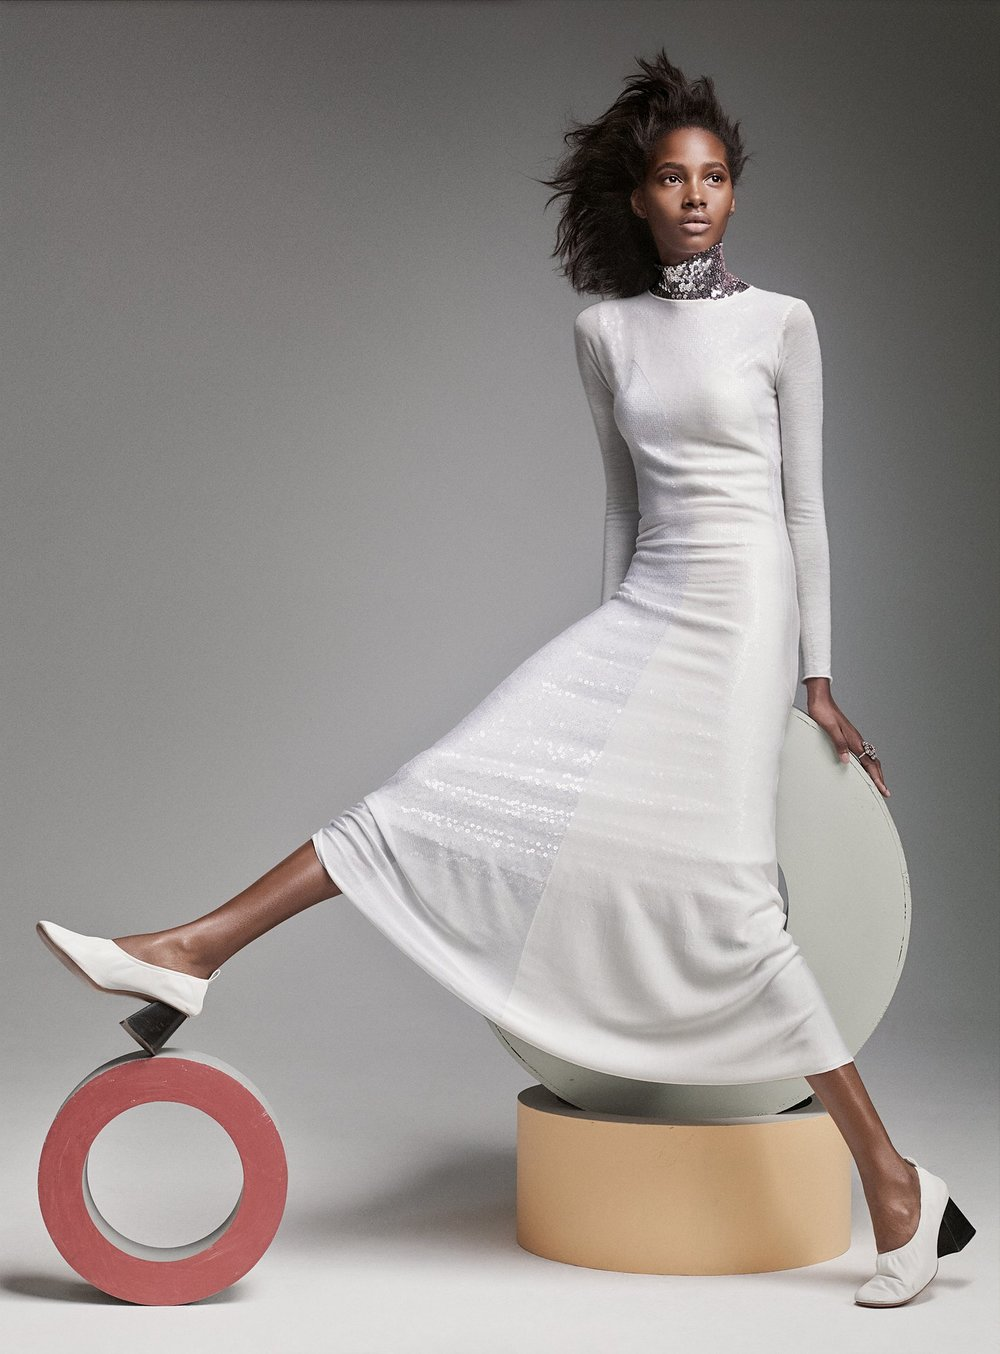 Tami Williams in a Christian Dior dress